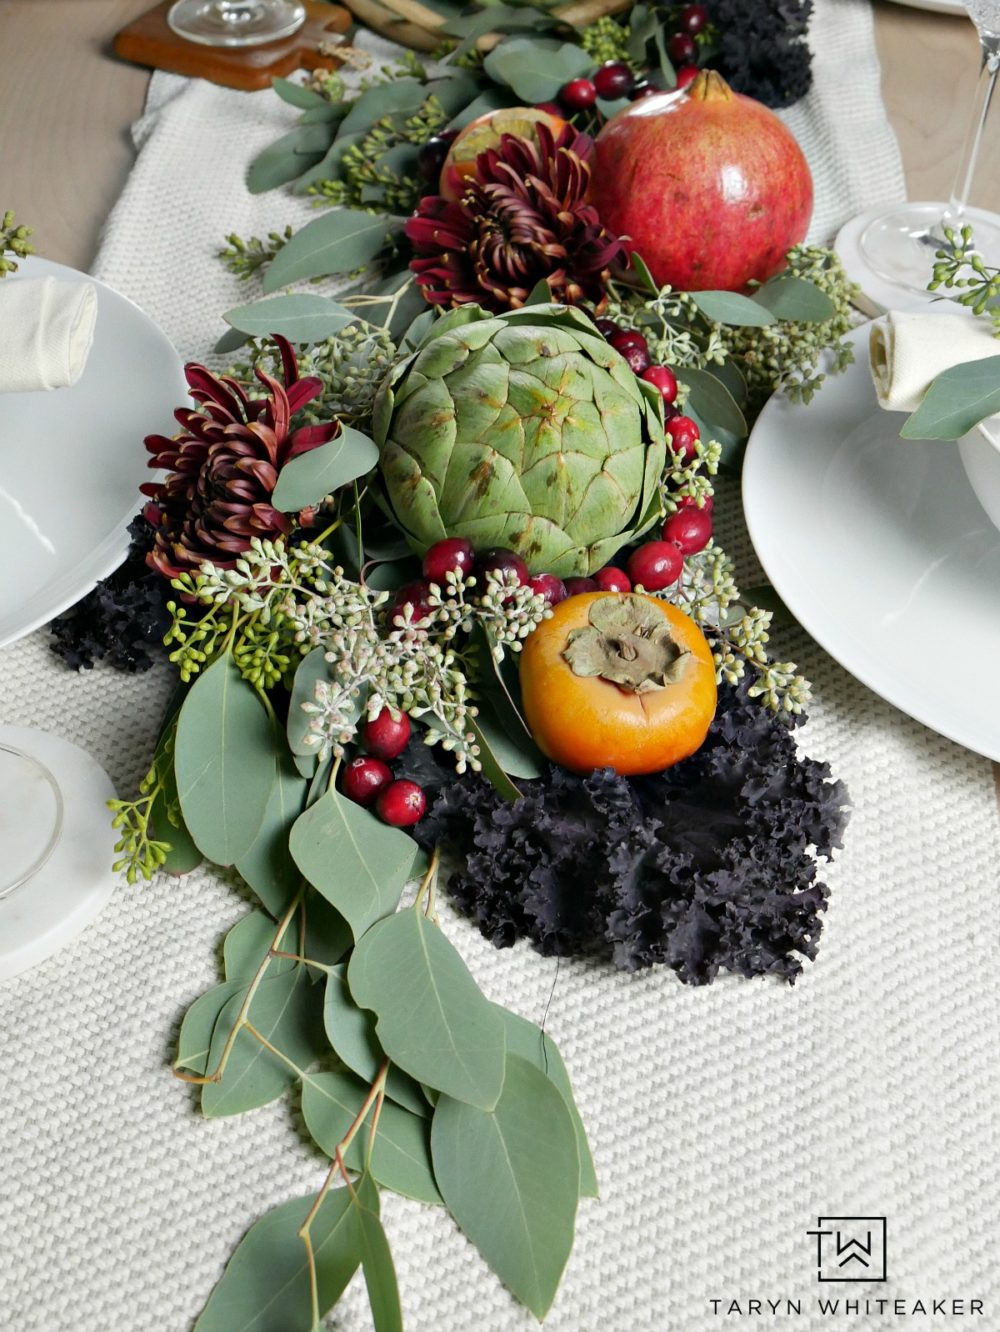 Tips for creating a centerpiece using fresh fruits and vegetables